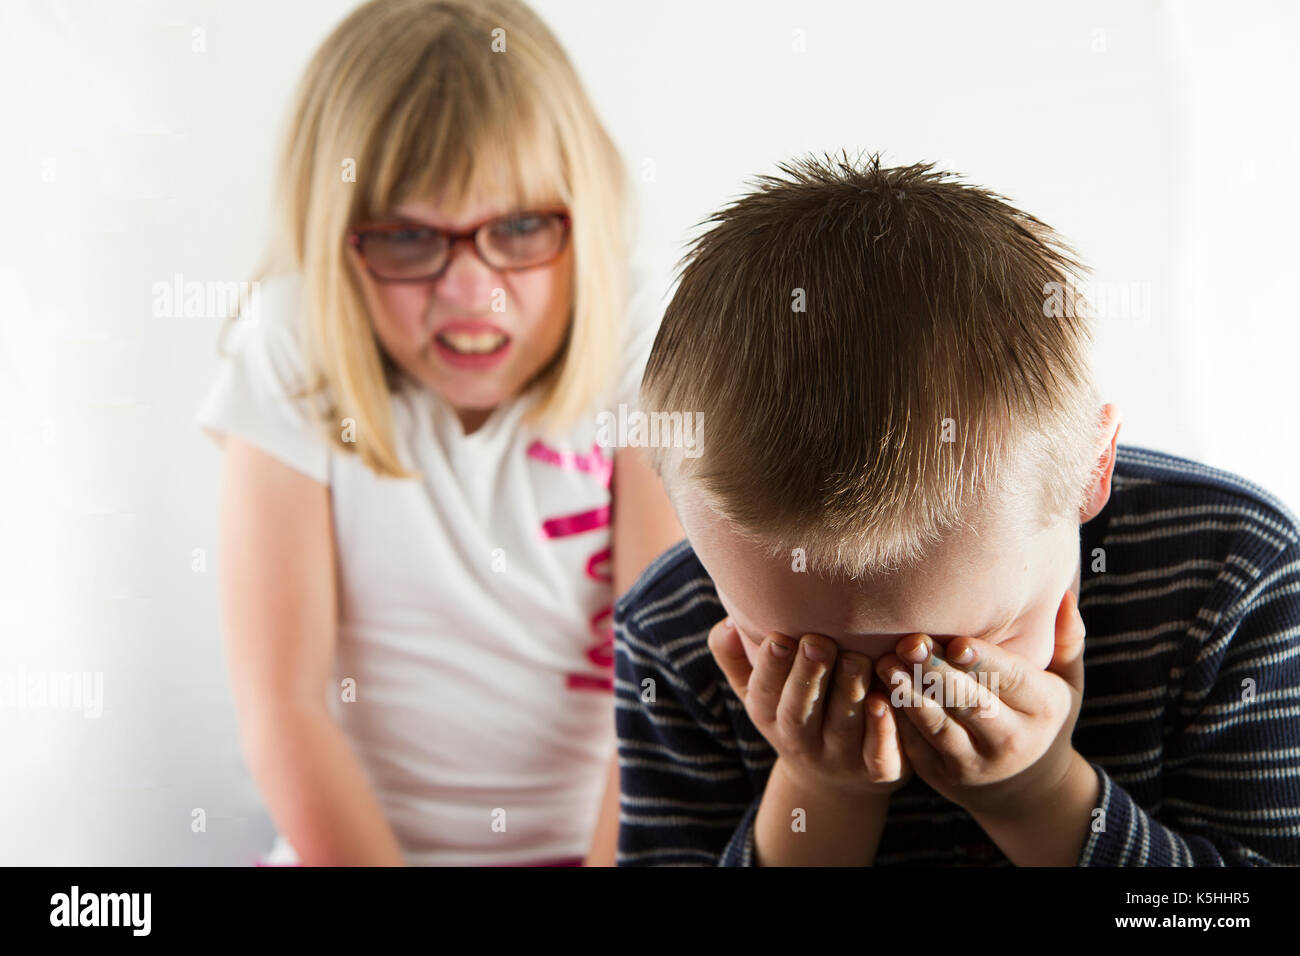 young boy sad as he is being picked on by an angry girl stock photo